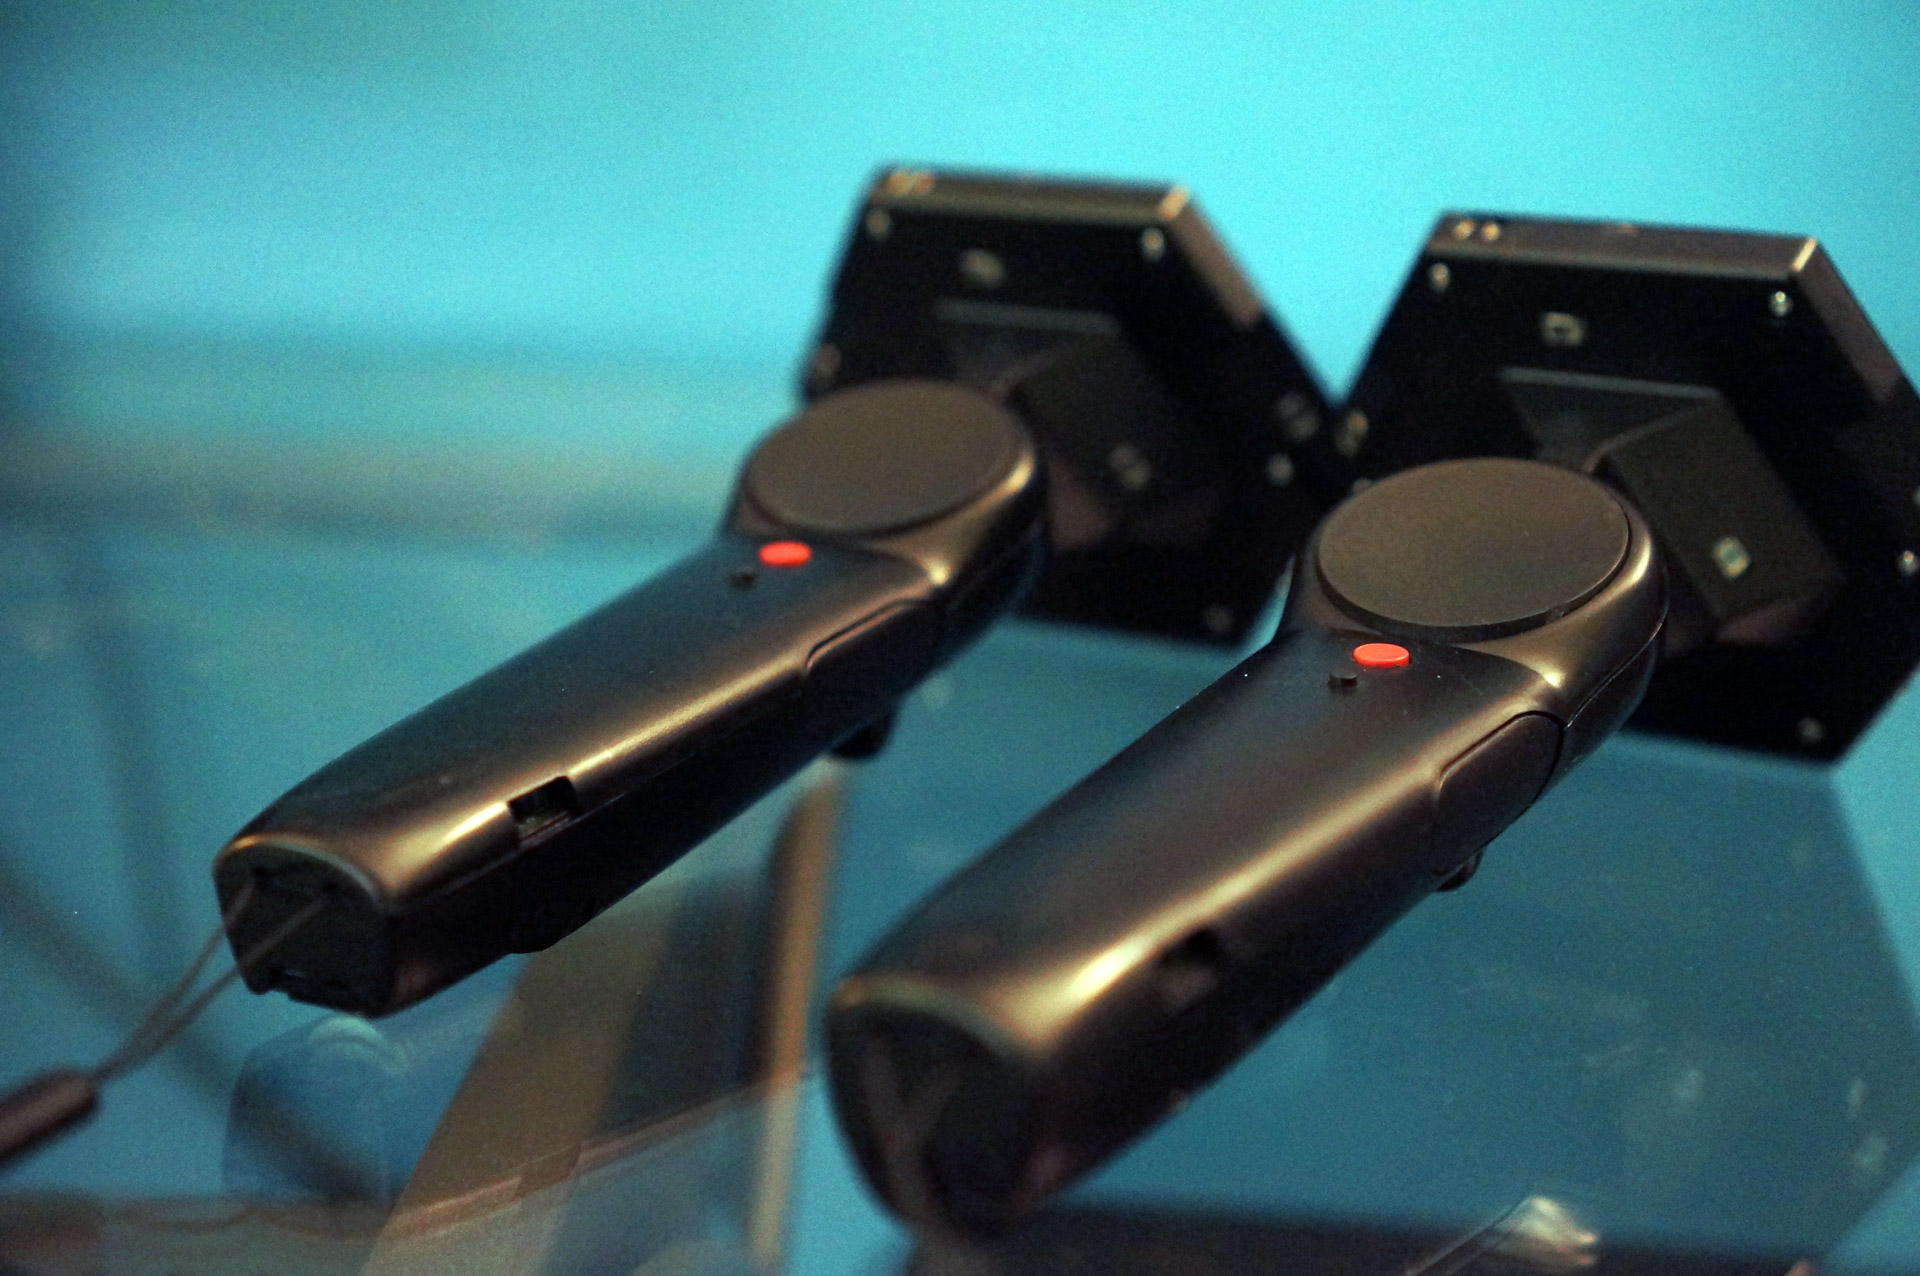 The Developer Edition wireless controllers